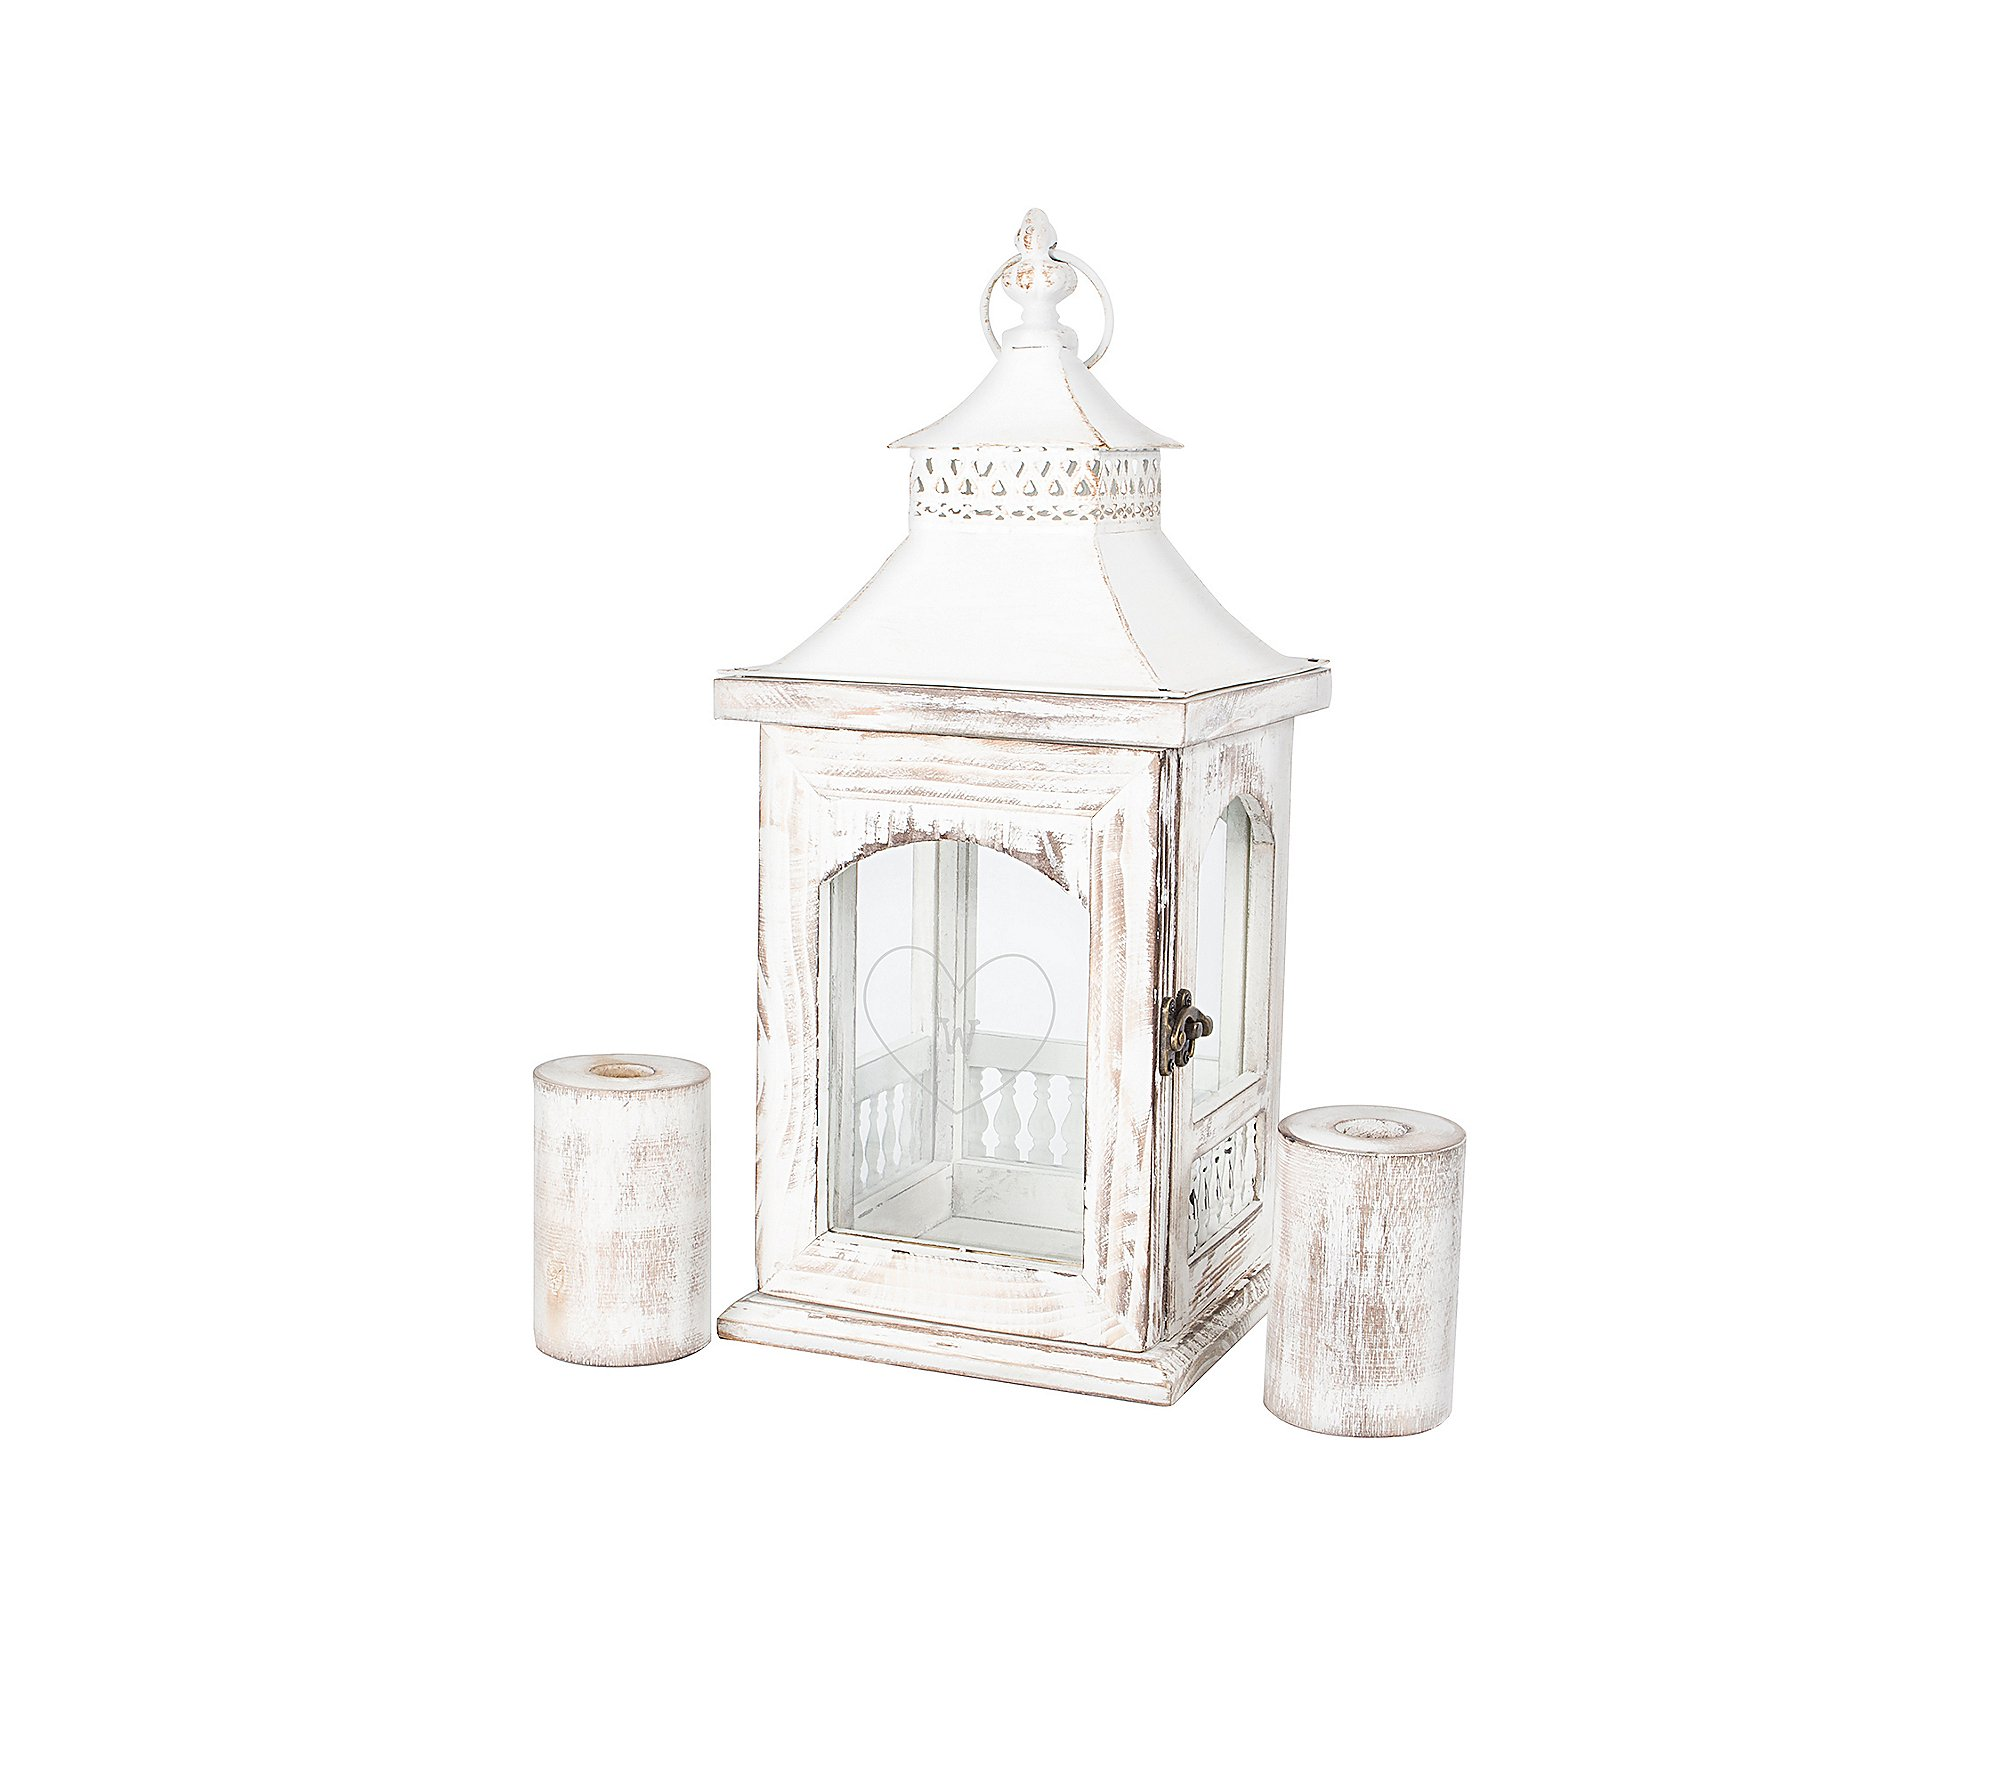 Personalized Rustic Heart Unity Lantern with Candle Holders, Letter U